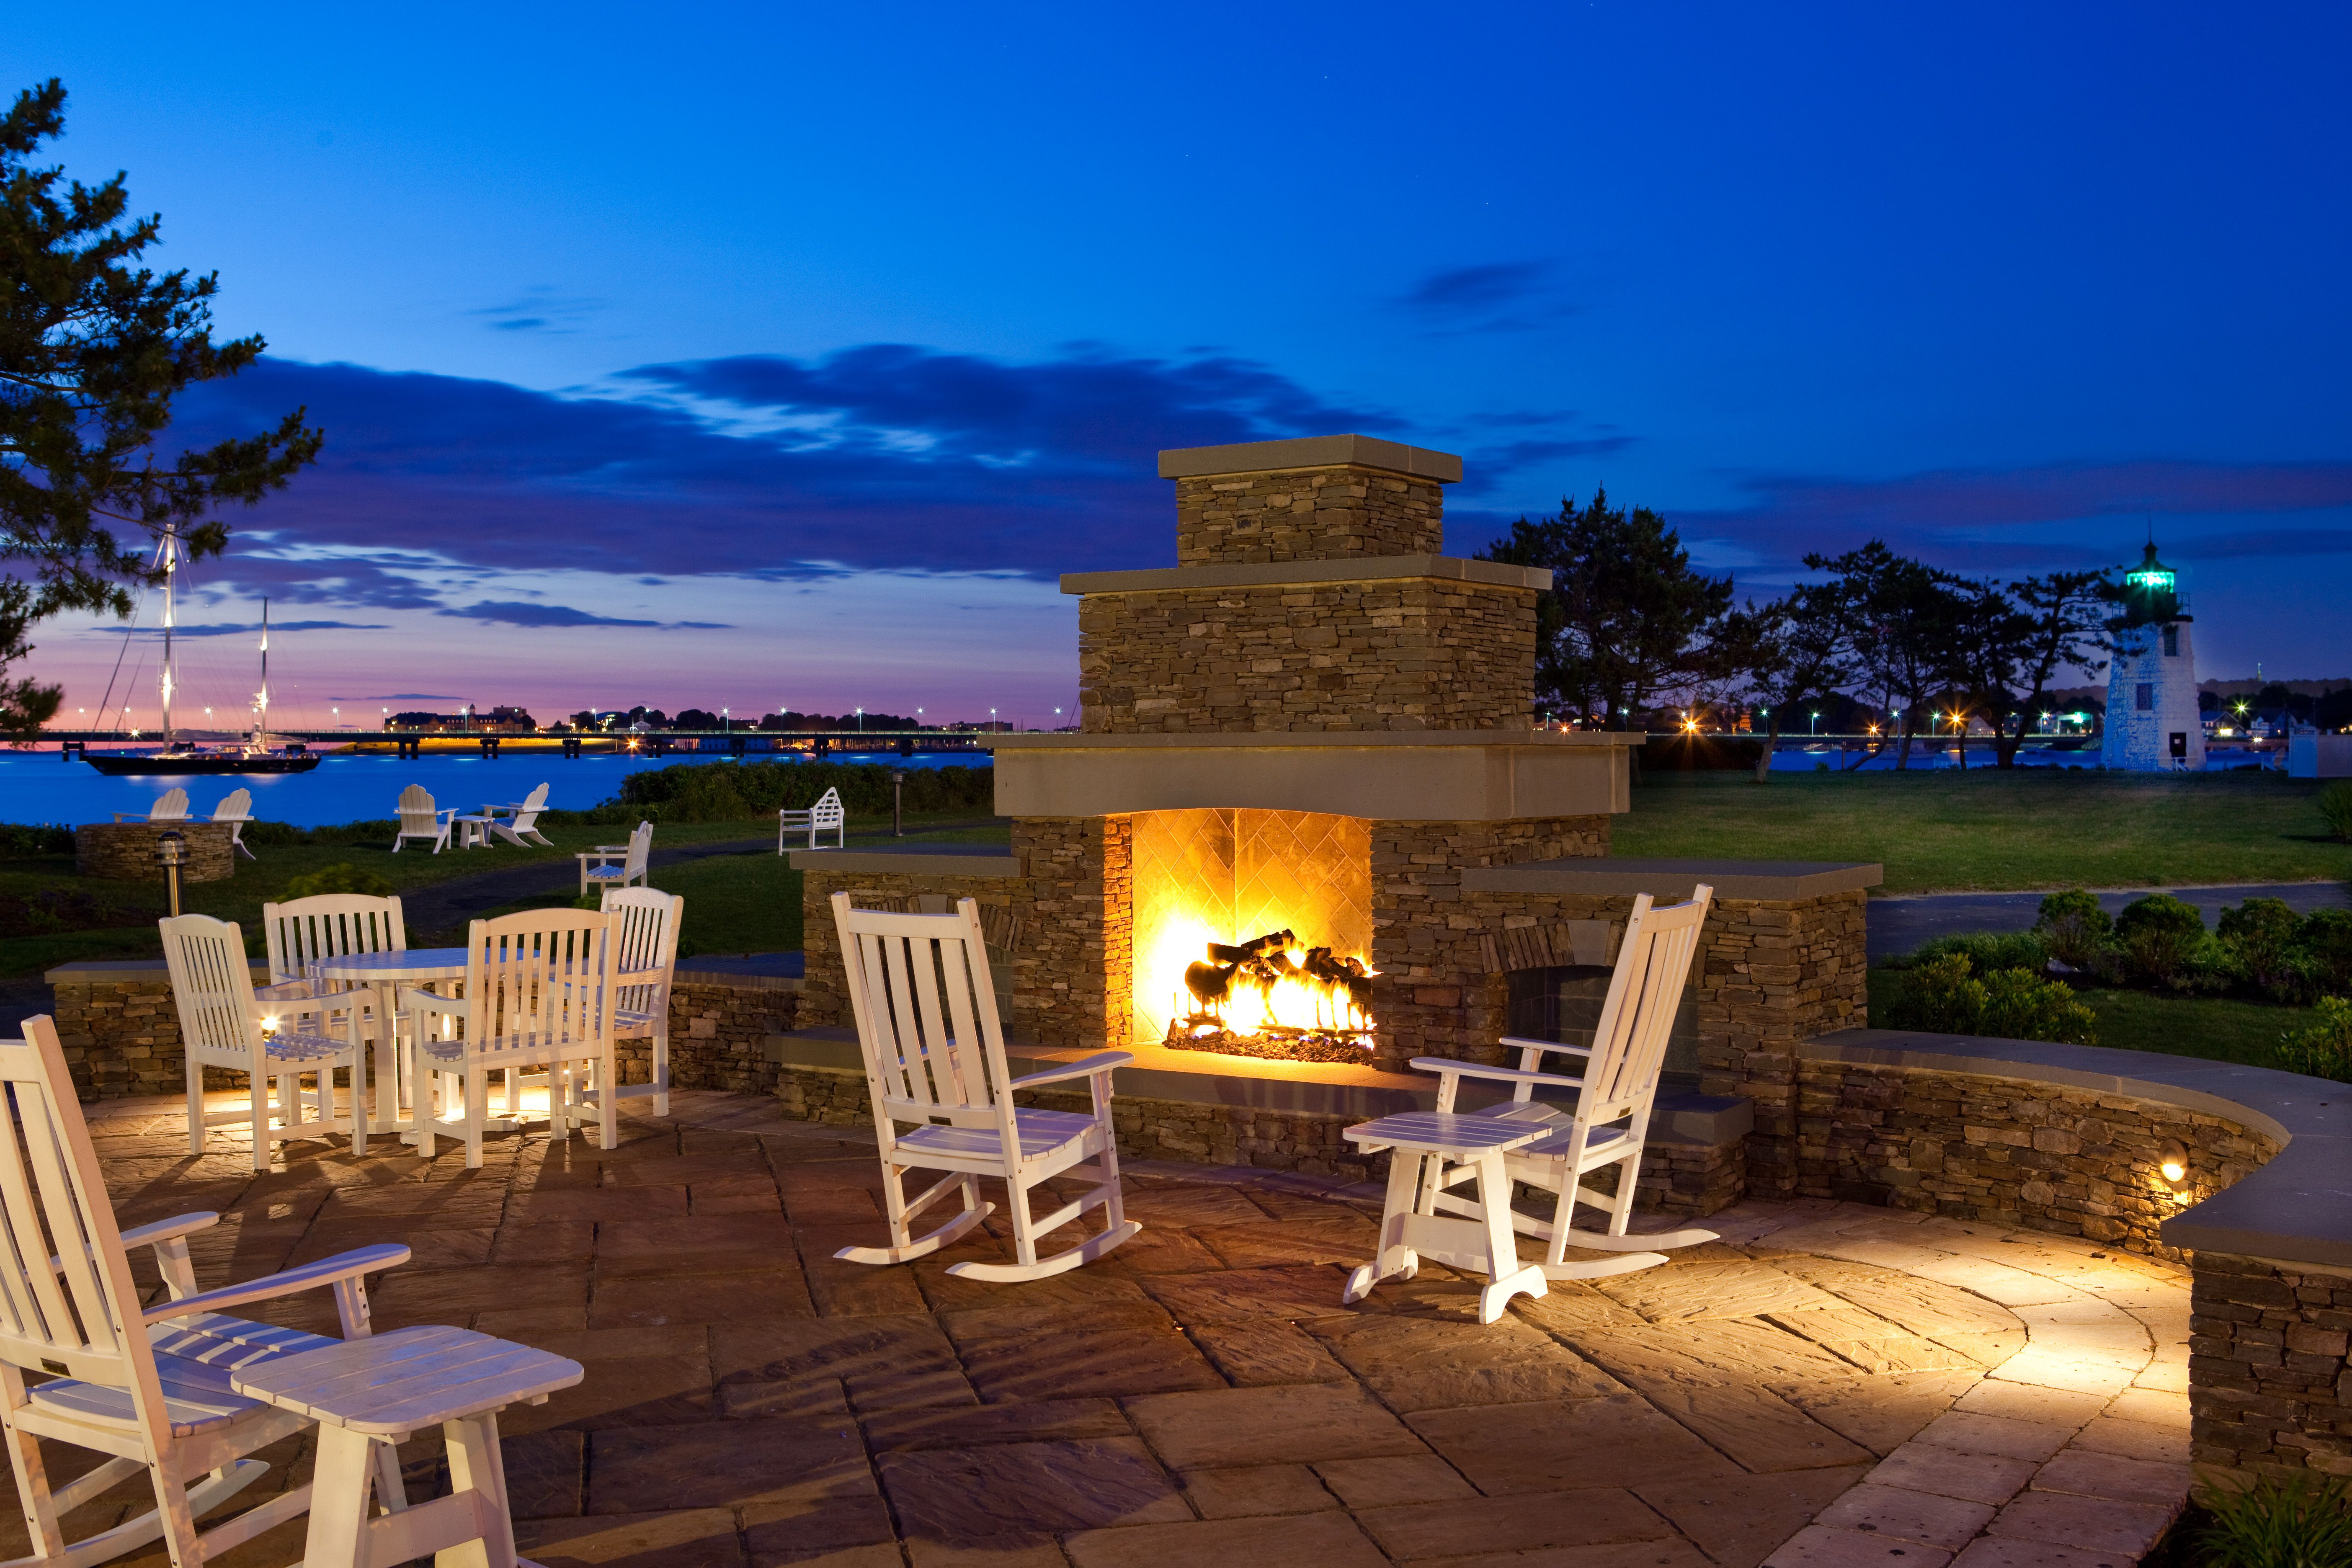 i want this kind of fireplace outside for bonfires and such :)